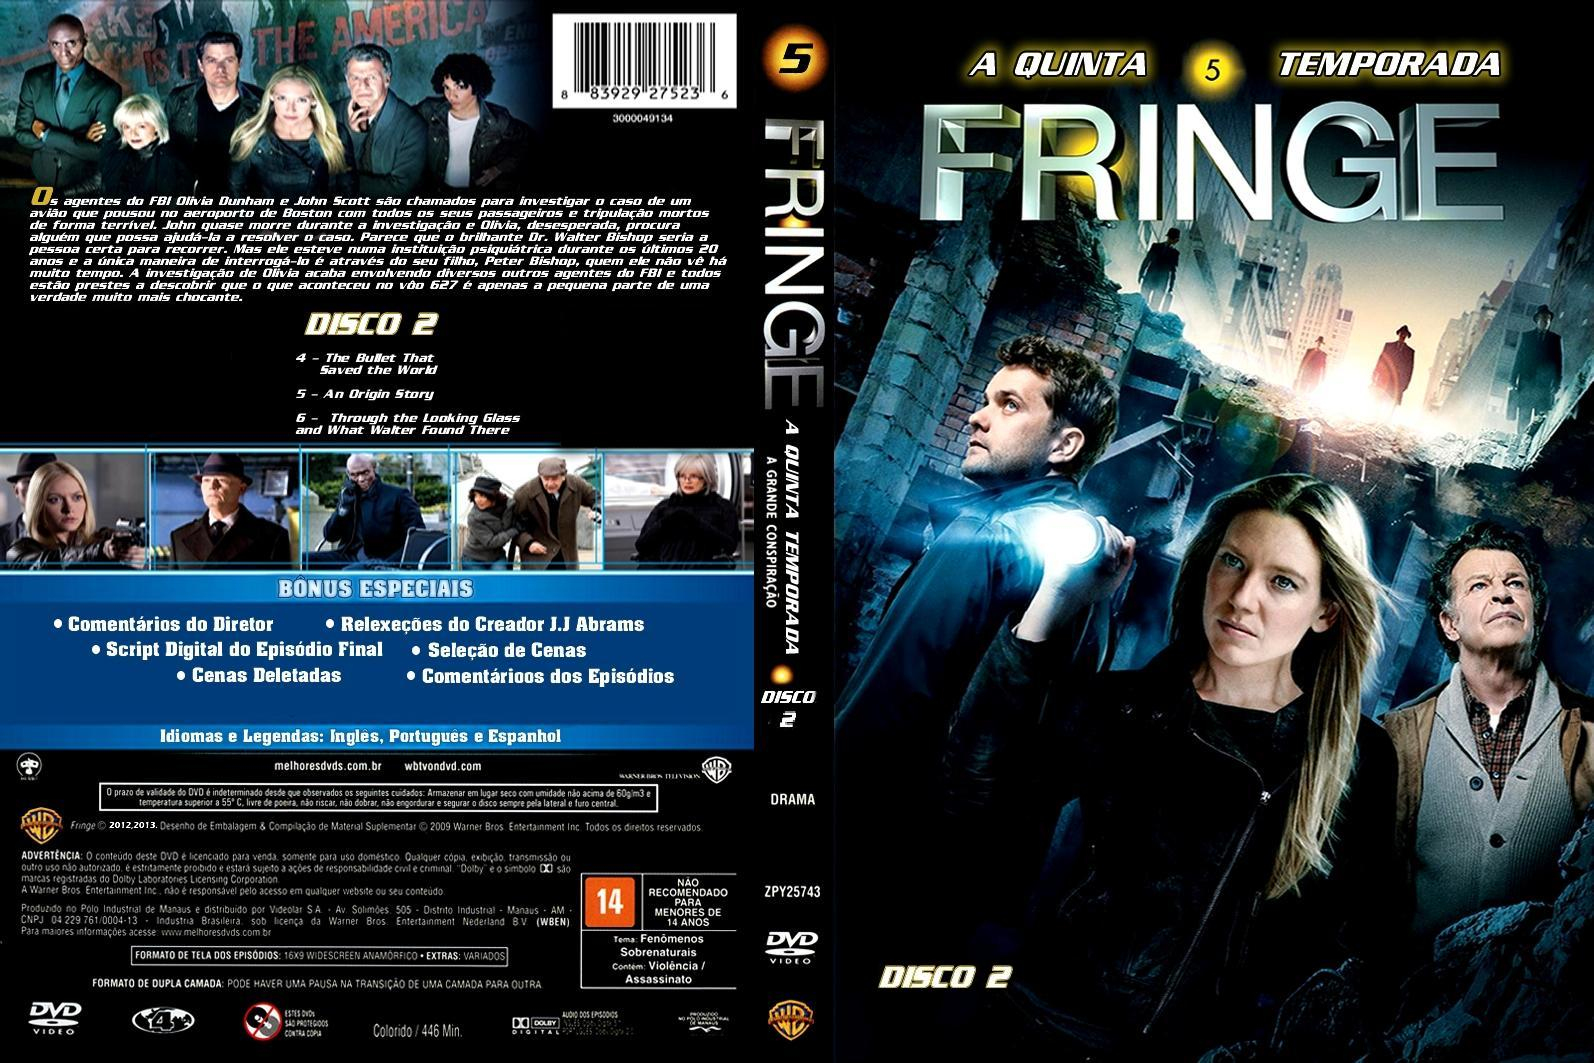 Images of Fringe Wallpaper 4 Temporada - #CALTO